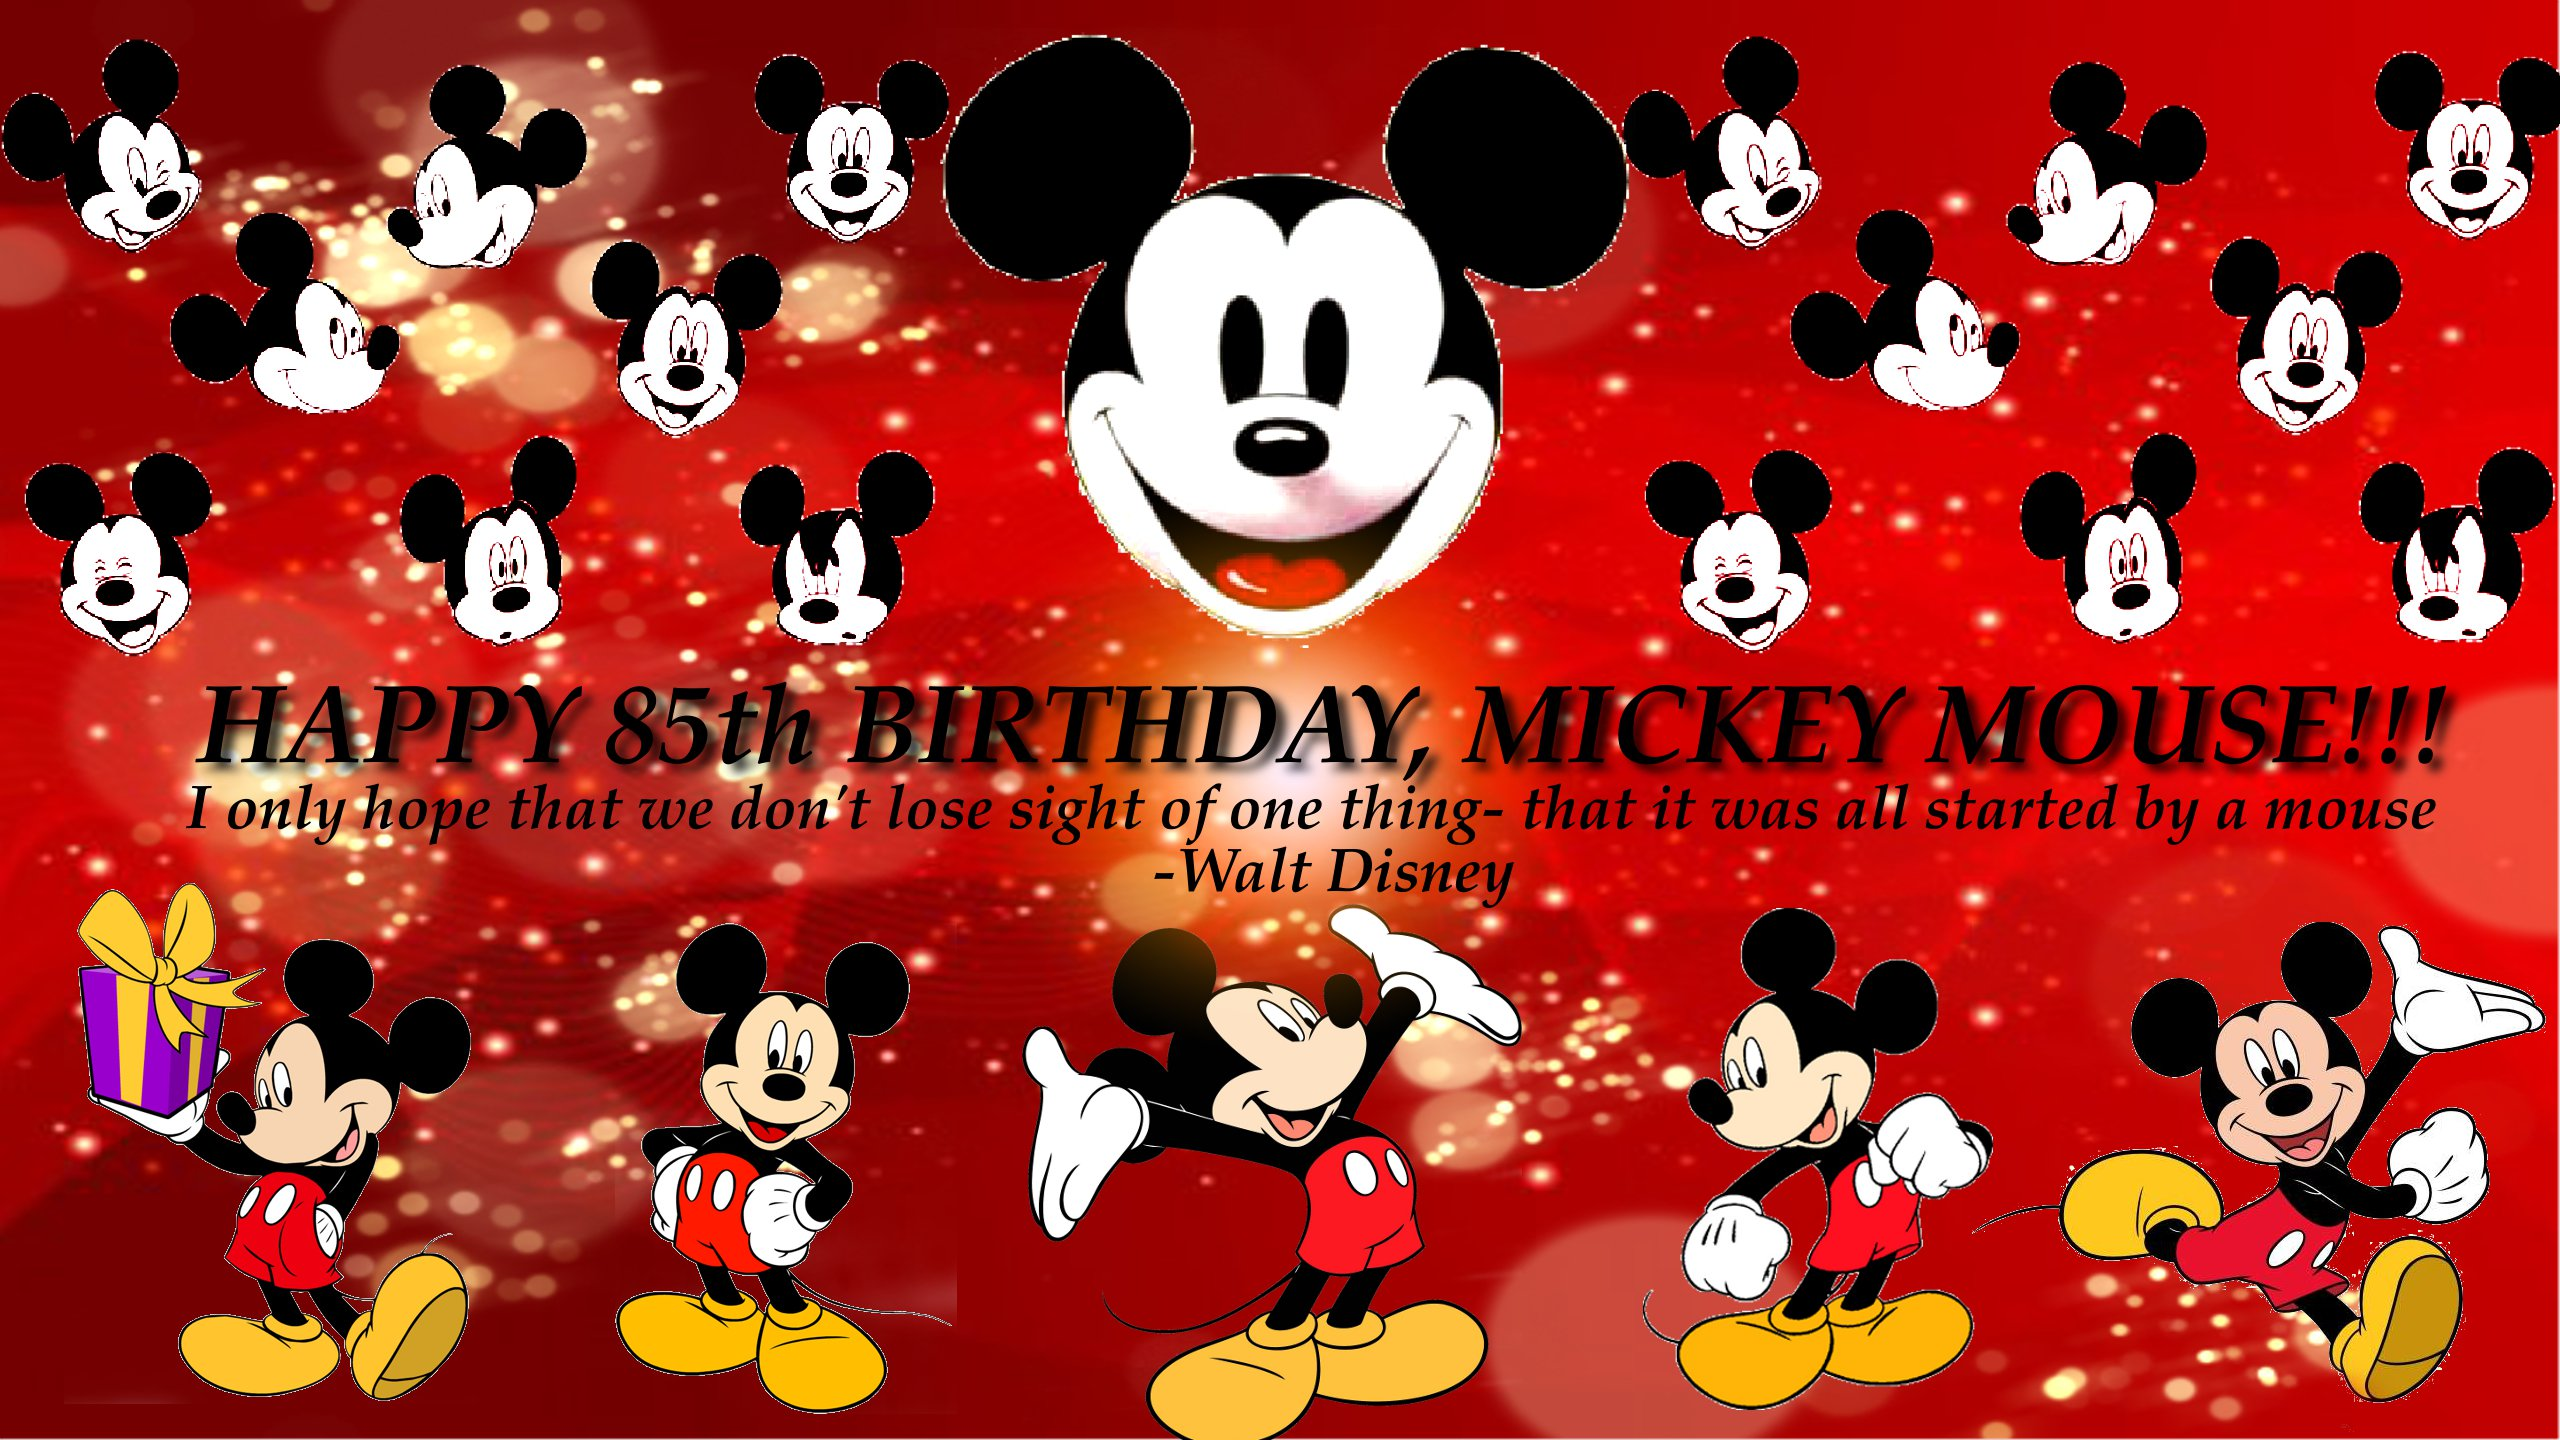 Disney Images Happy 85th Birthday Mickey Mouse D HD Wallpaper And Background Photos